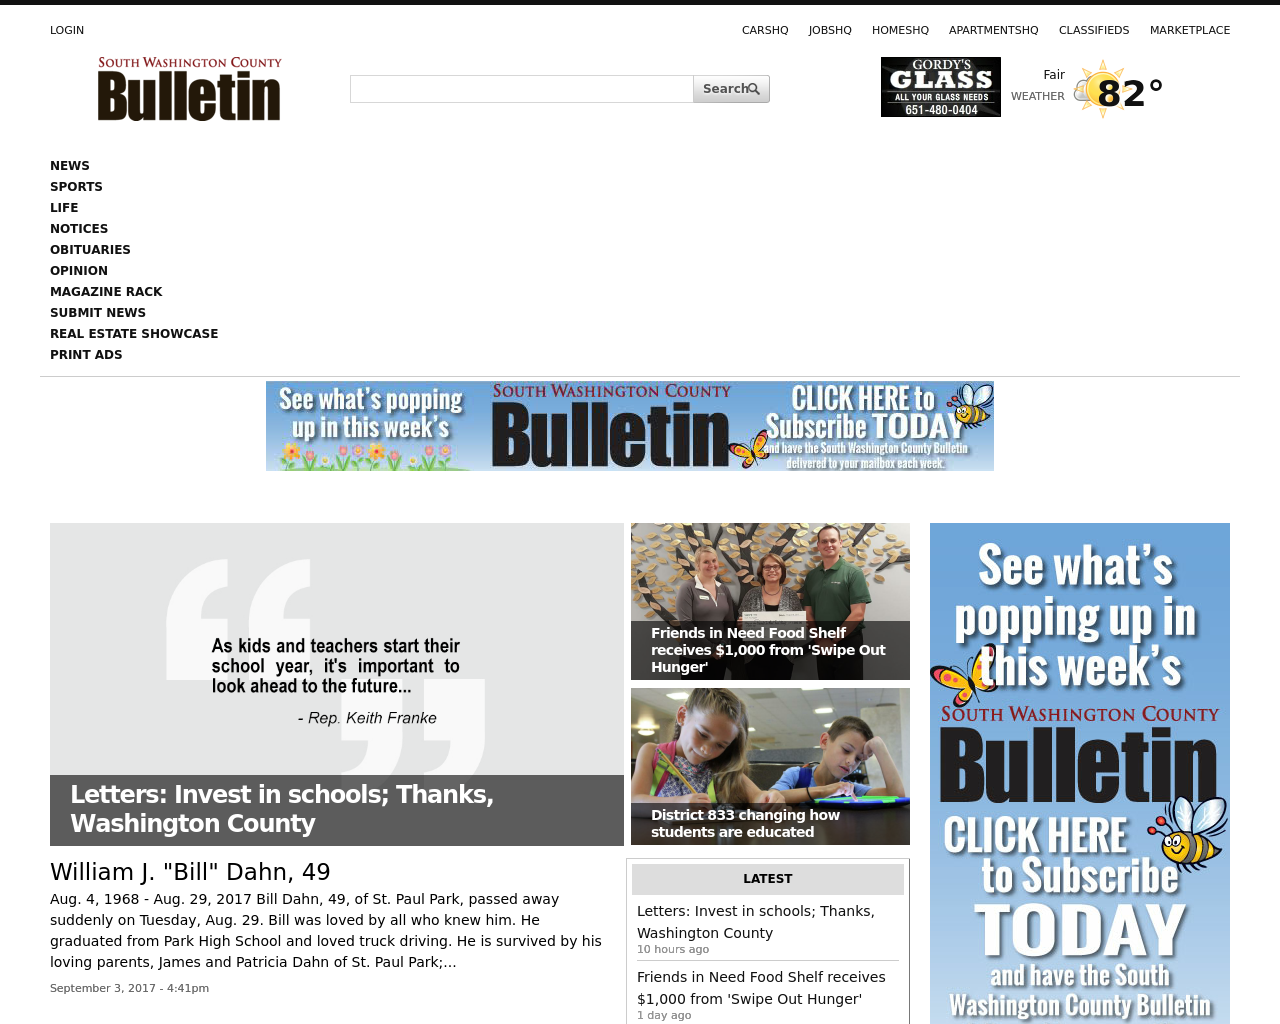 SWC-Bulletin-Advertising-Reviews-Pricing